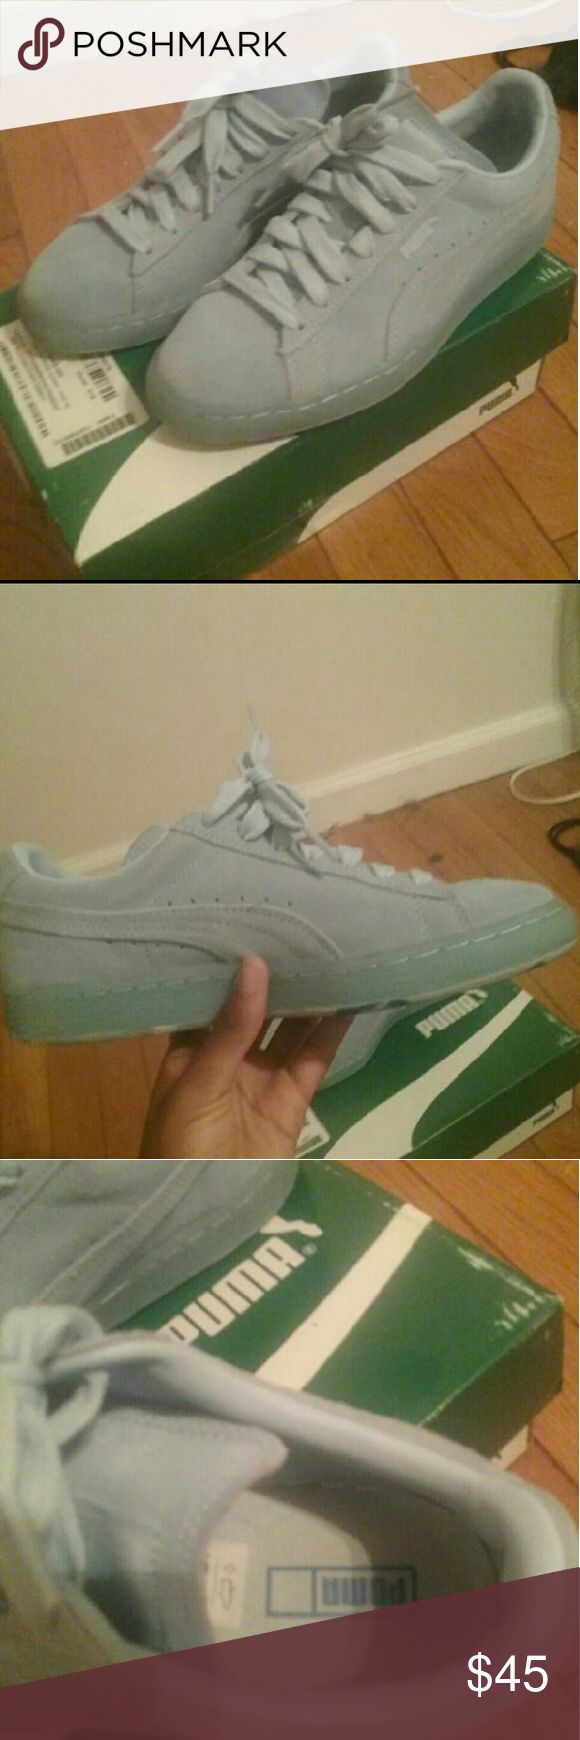 Light blue suede puma's In great condition only worn a few times Puma Shoes Sneakers